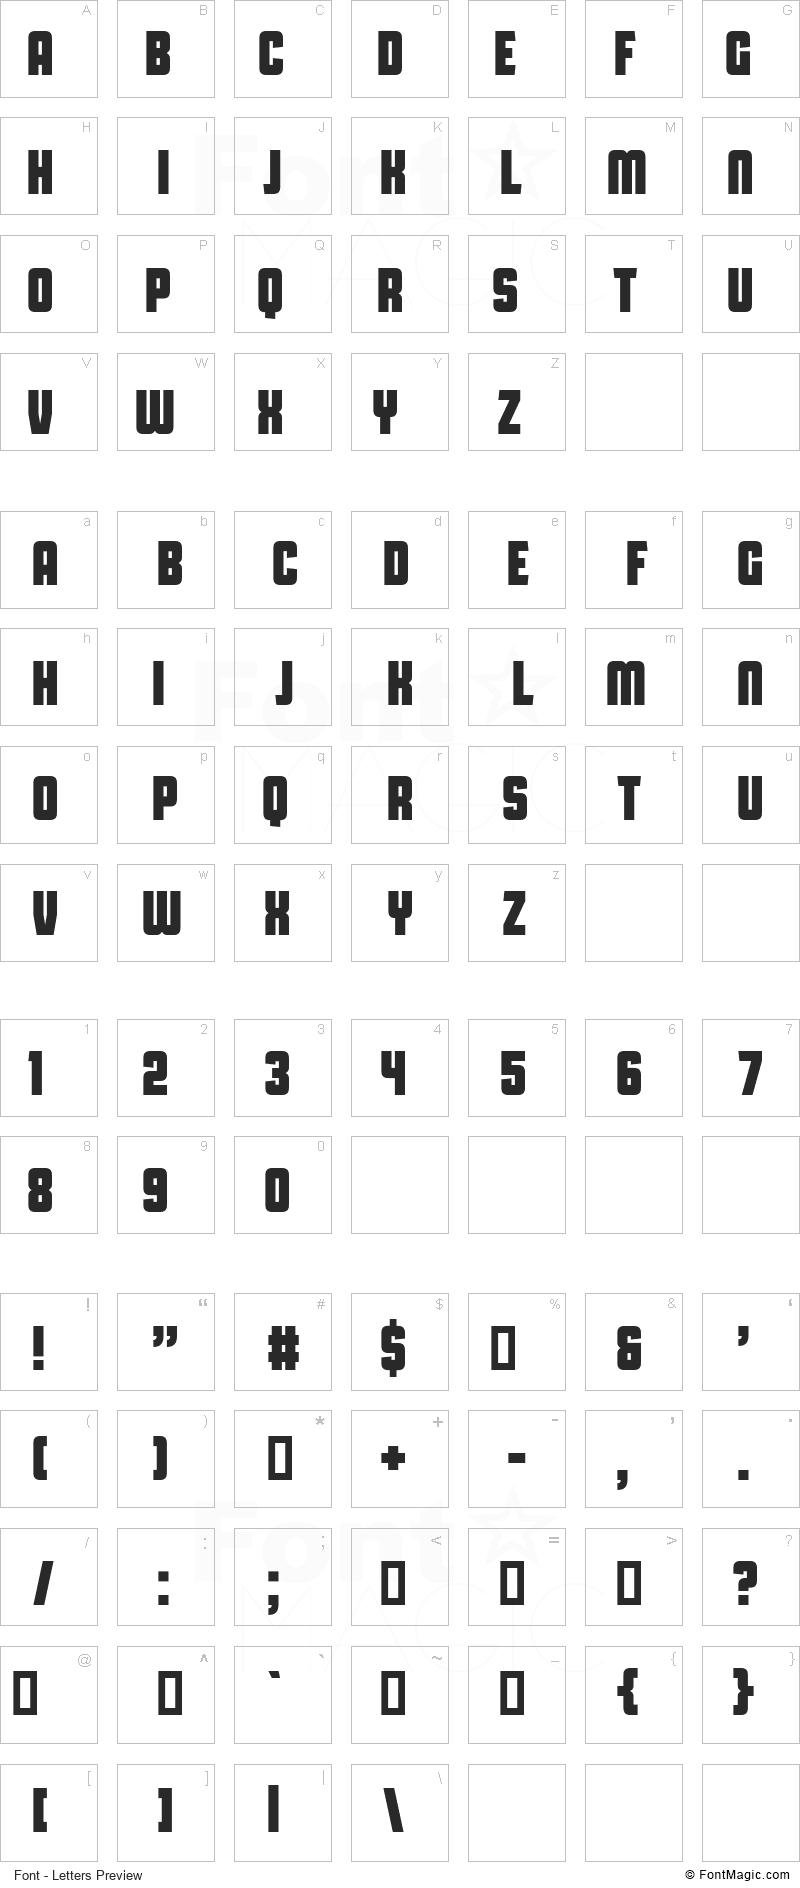 Capital Daren Font - All Latters Preview Chart